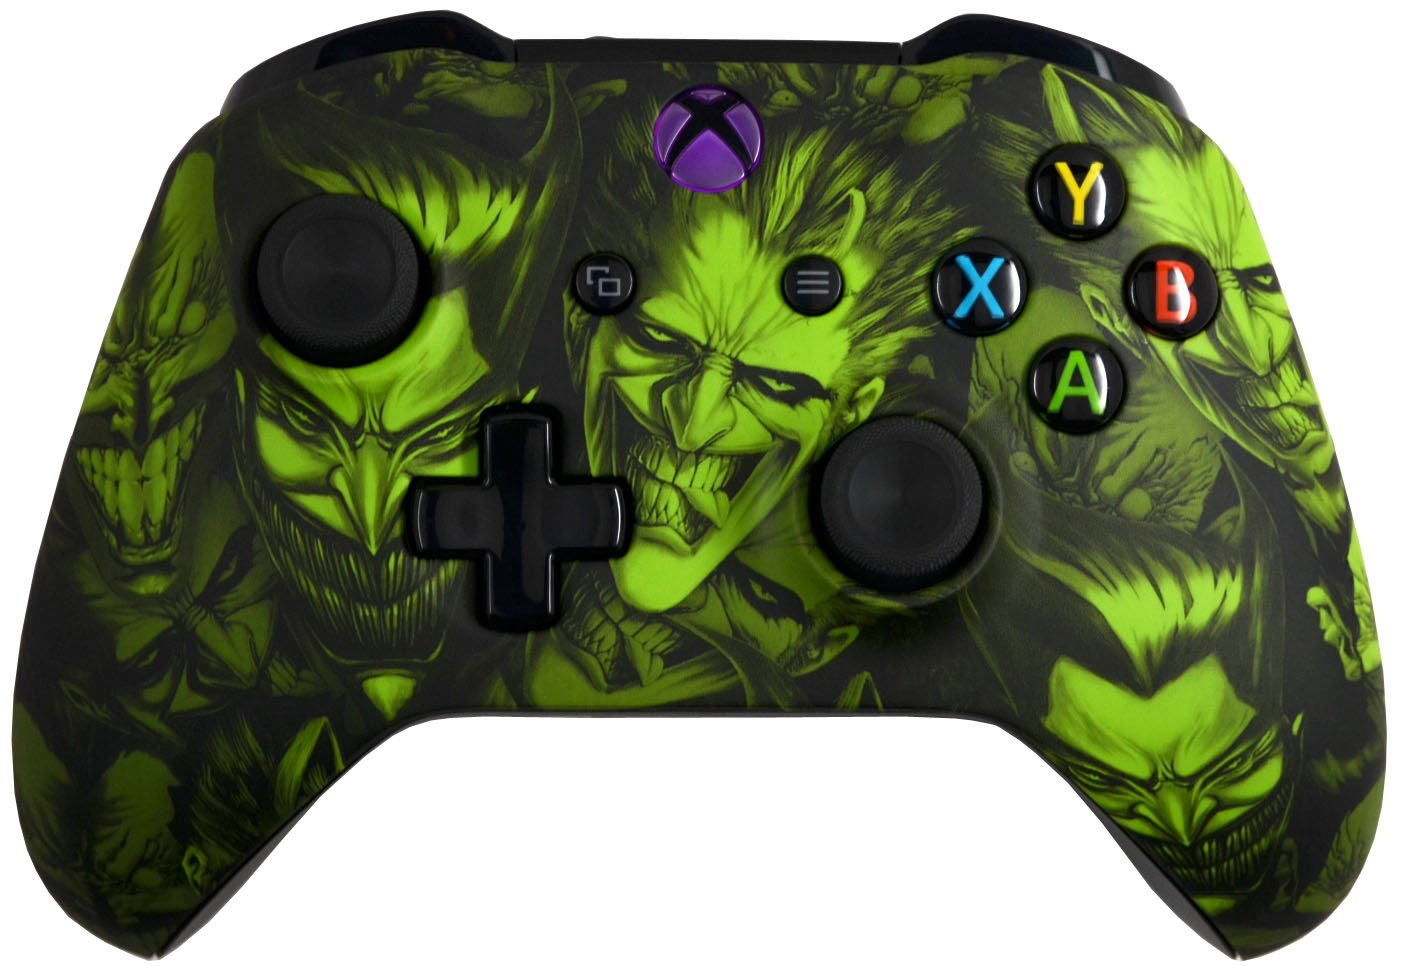 5000+ Modded Xbox One Controller for All Shooter Games - Soft Touch Shell -  Added Grip for Longer Gaming Sessions - Multiple Colors Available (Scary